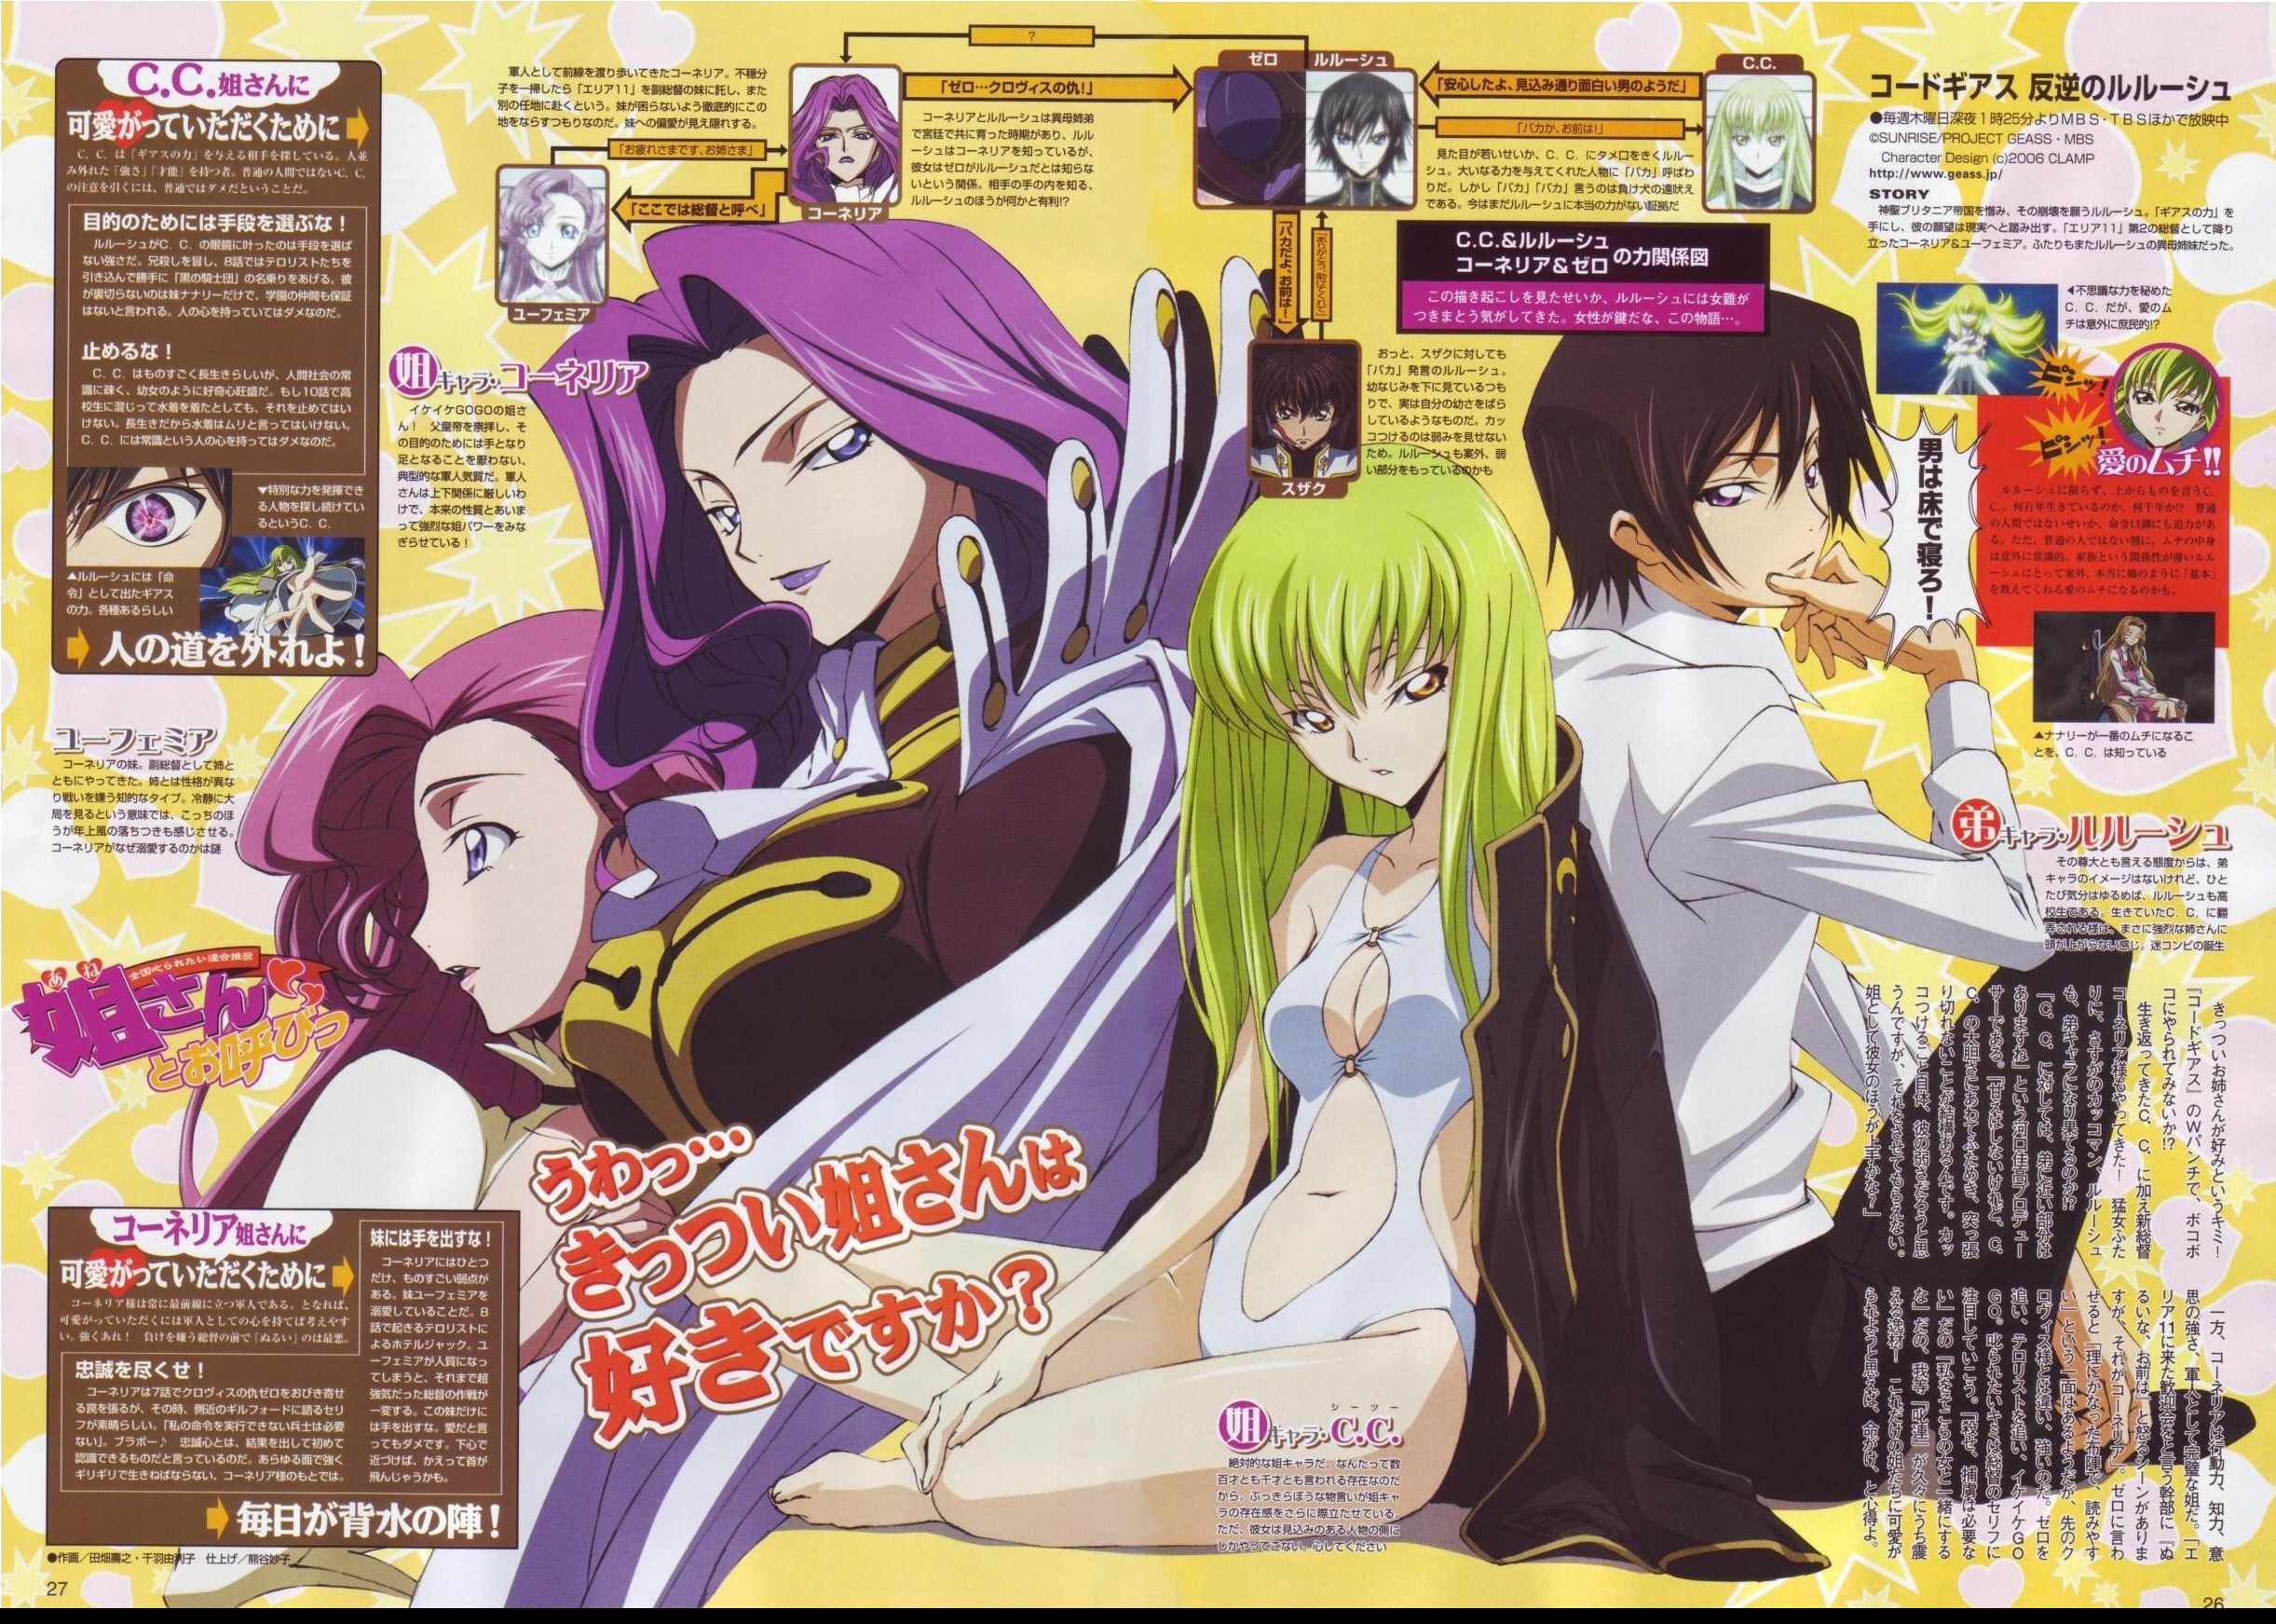 Top 20 Anime You Should Watch on Your Last Day Alive code geass